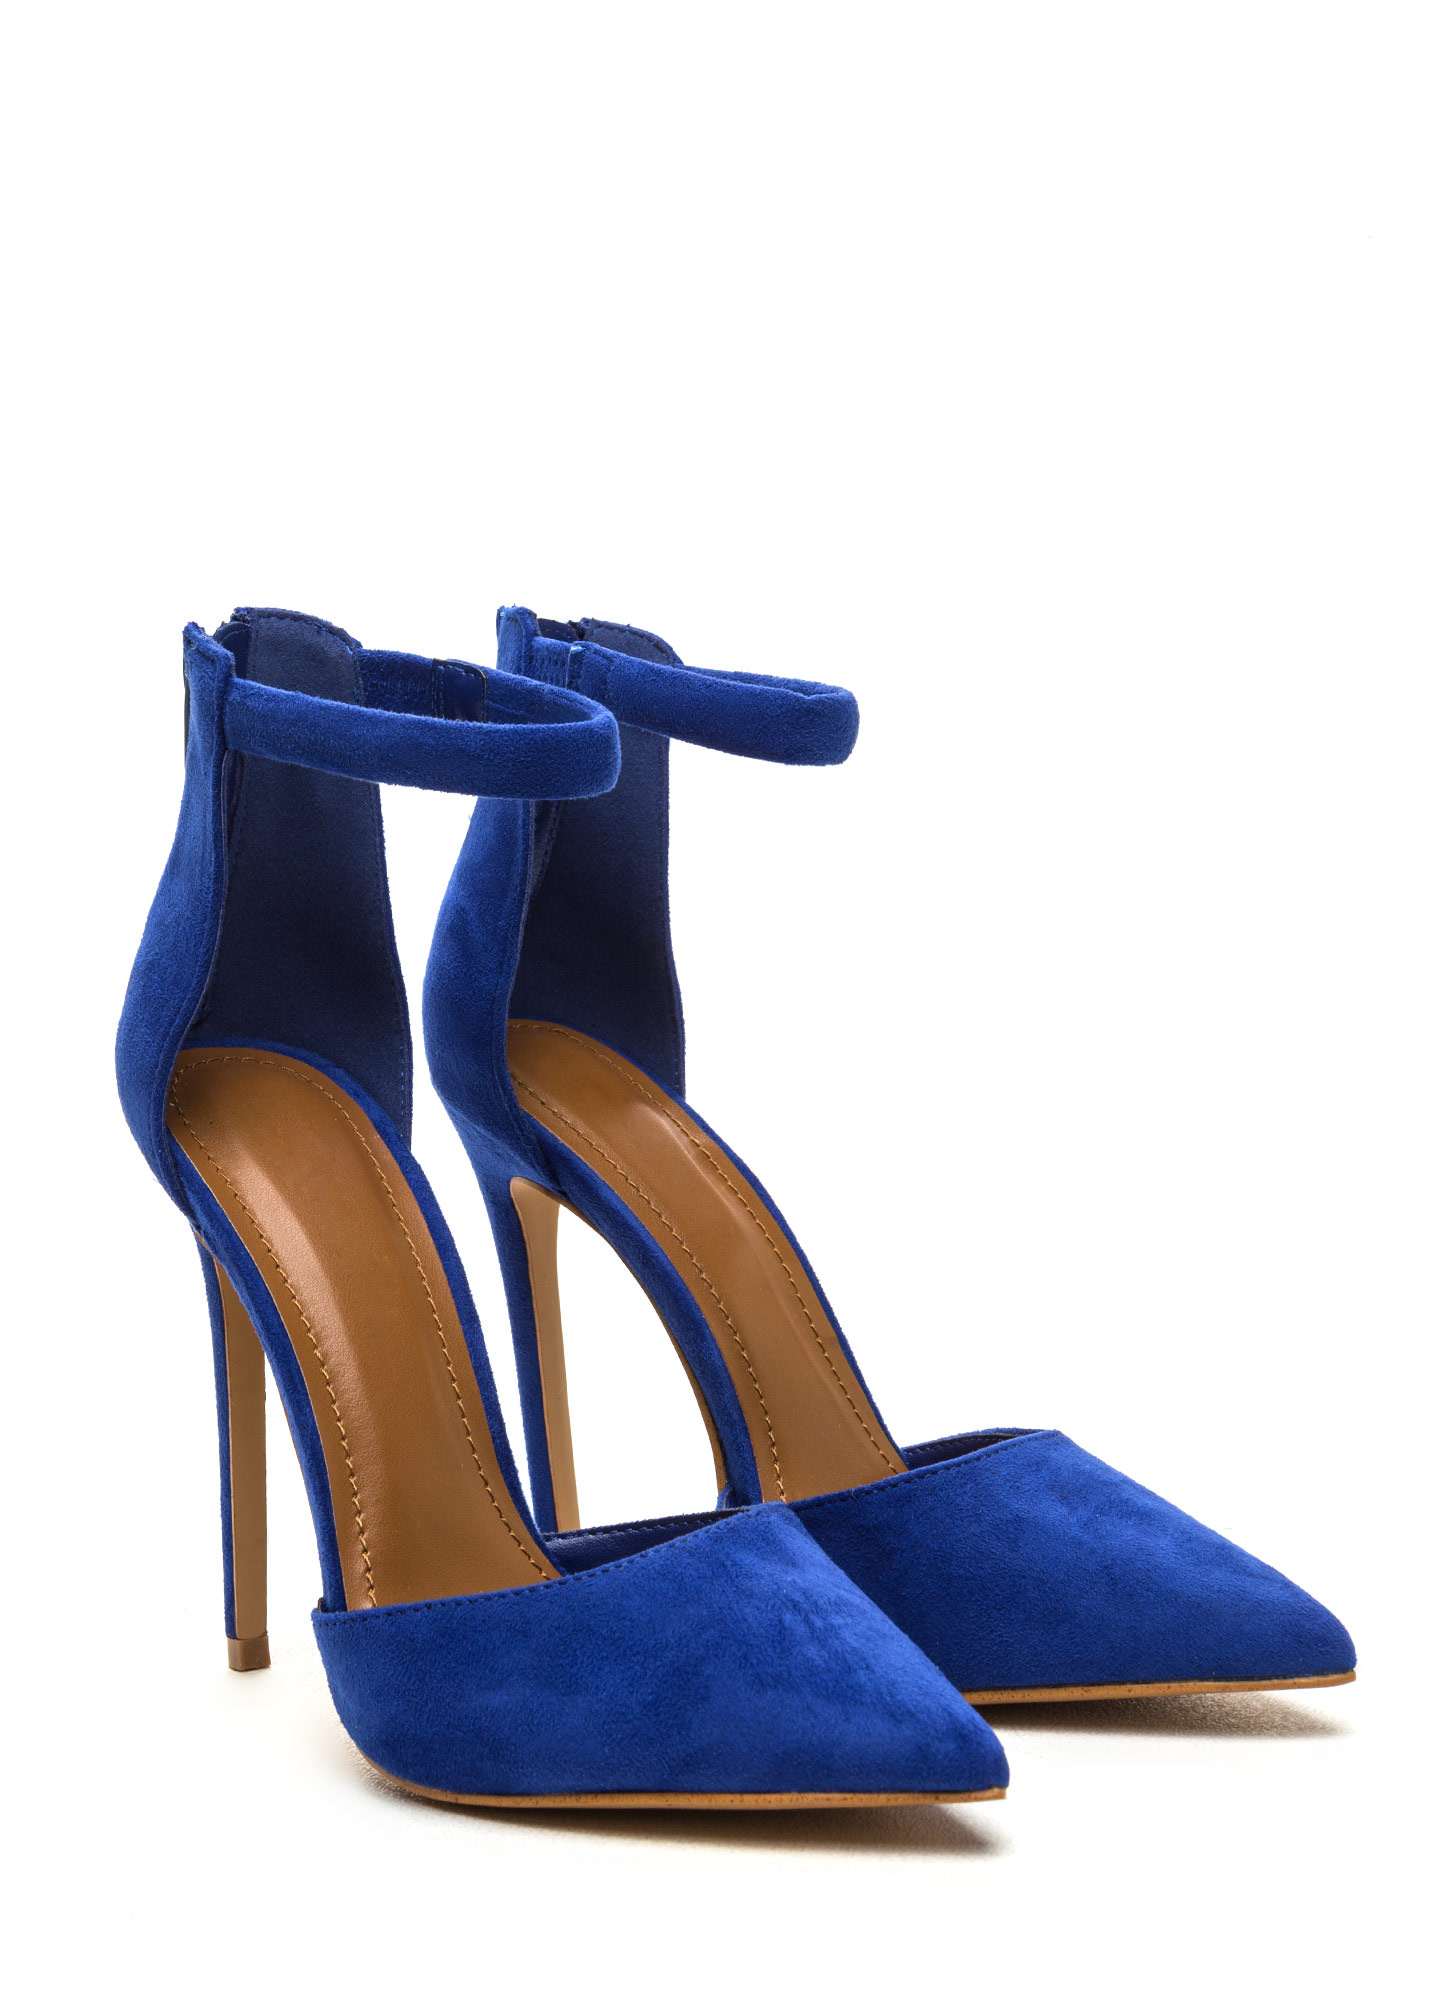 Socialite Style Faux Suede Pointy Heels BLUE